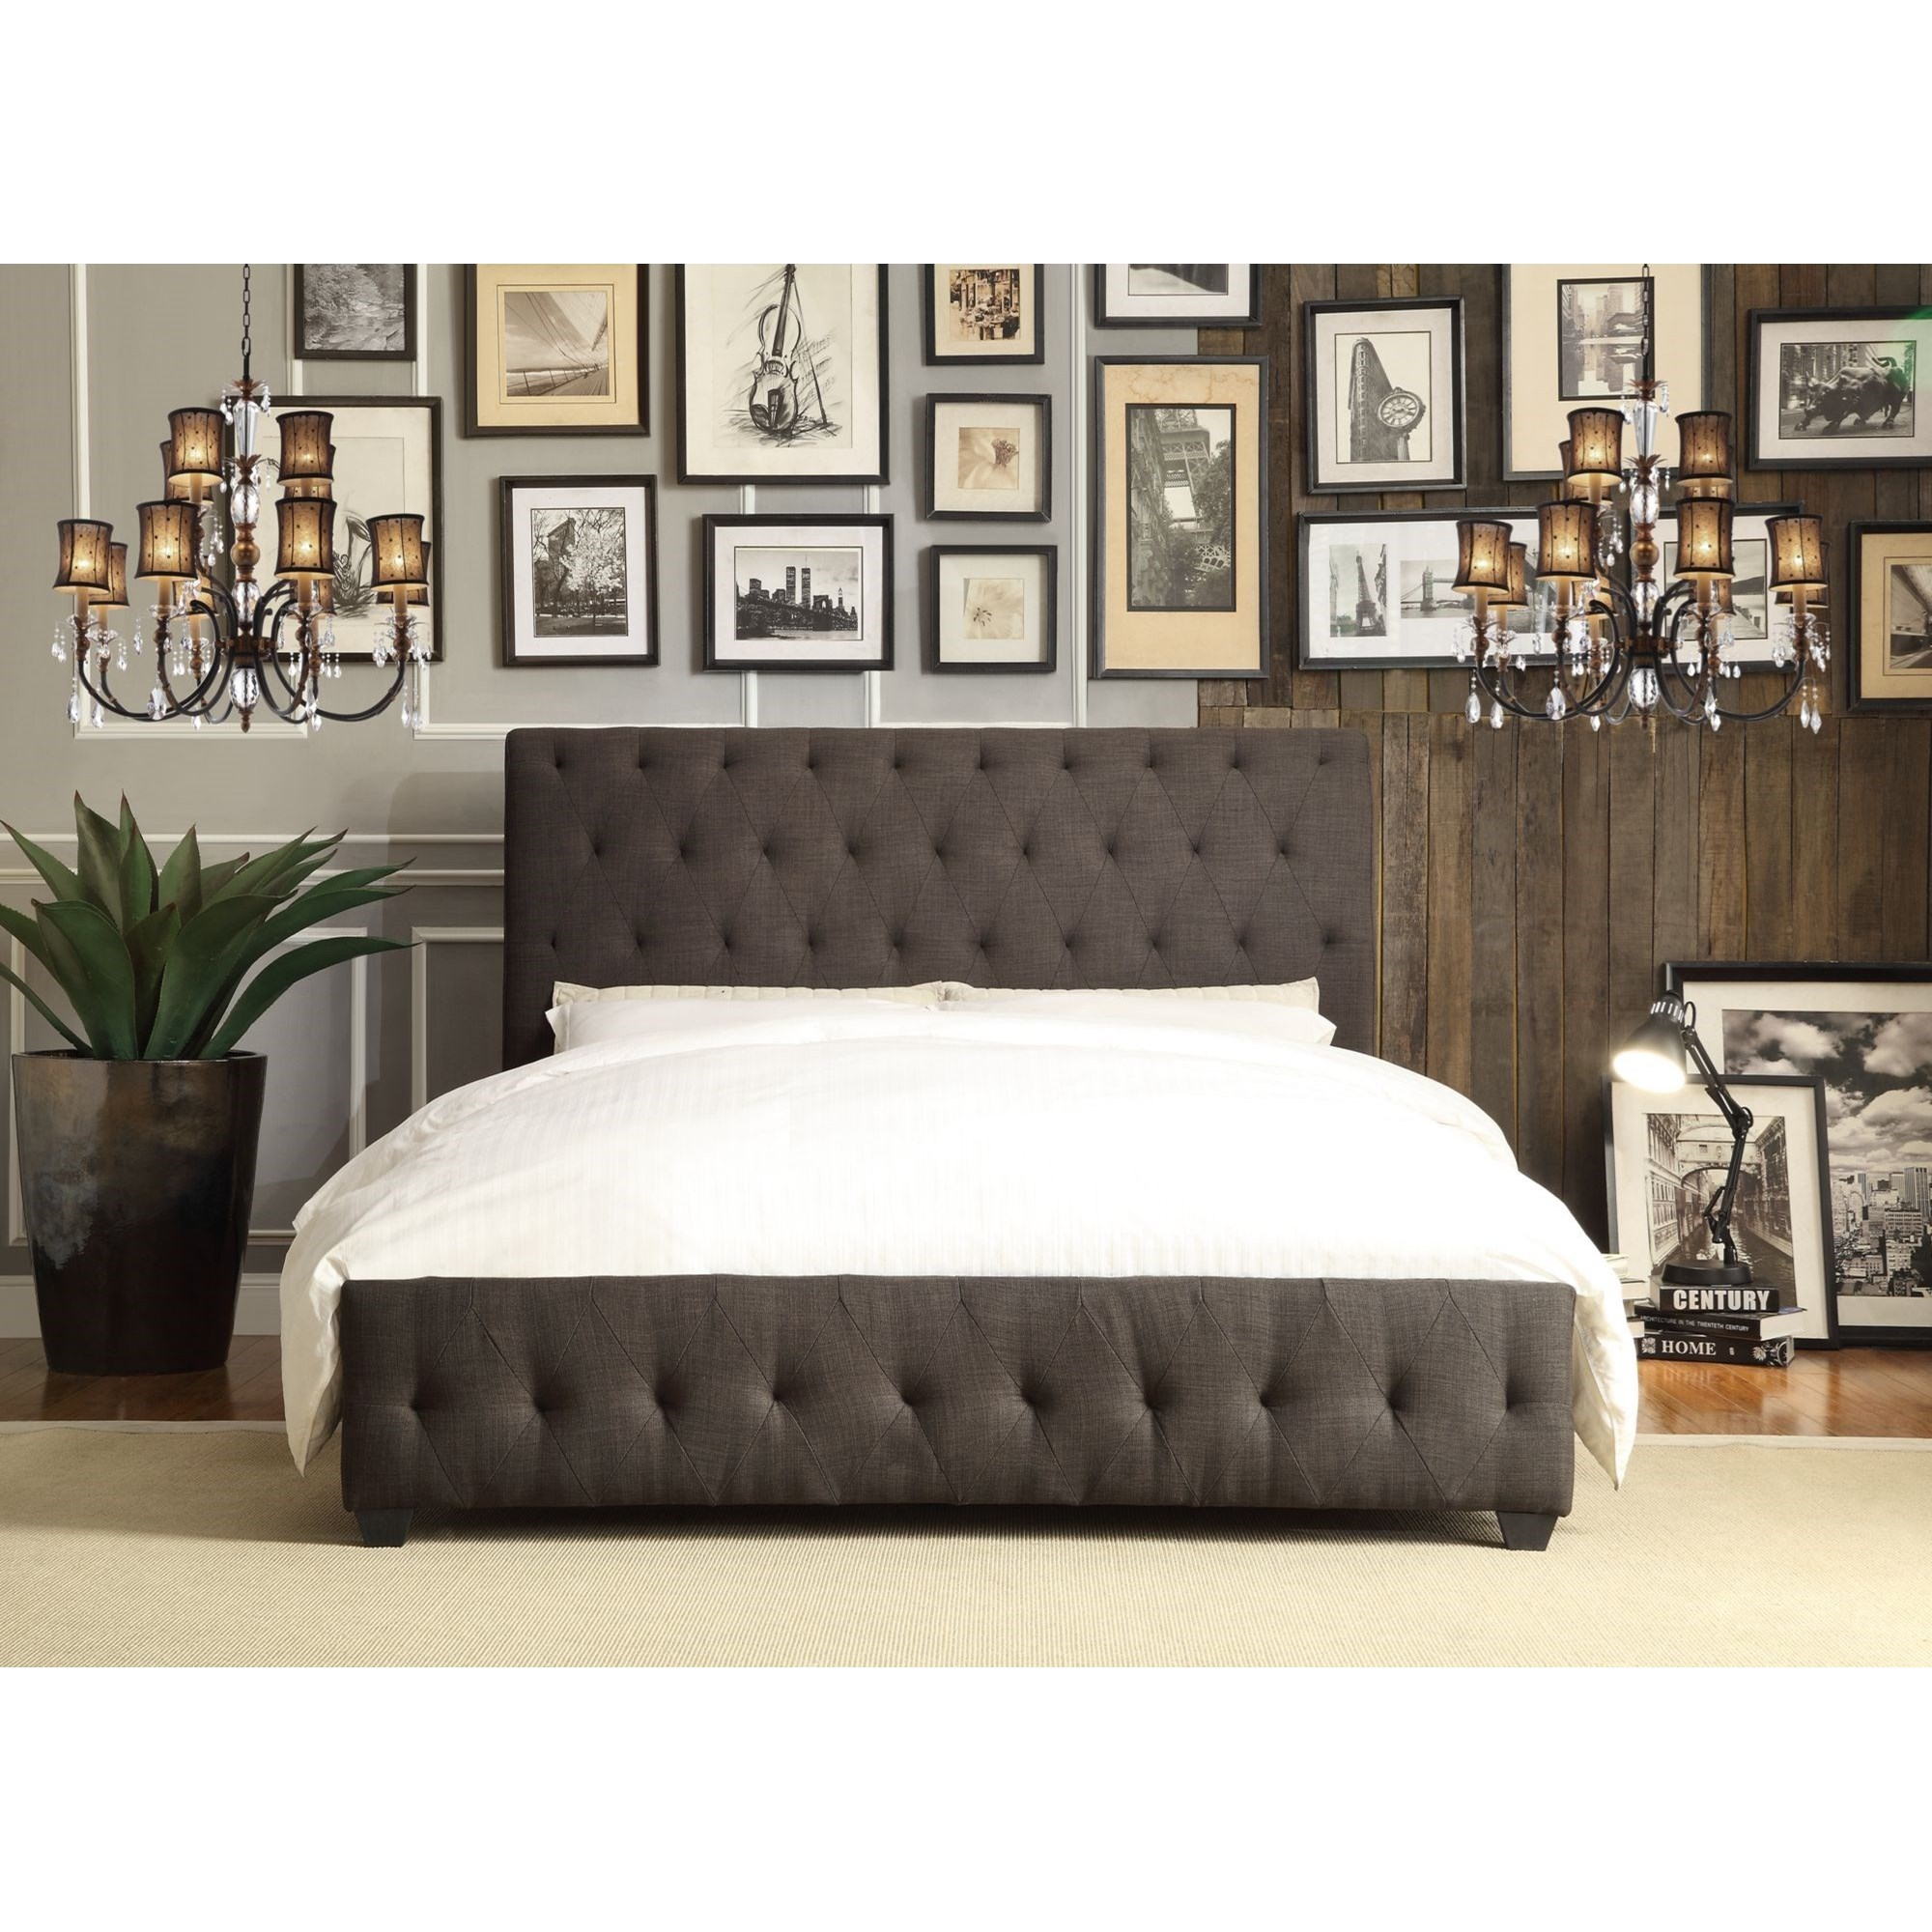 Baldwyn Contemporary King Upholstered Sleigh Bed by Homelegance at Darvin Furniture